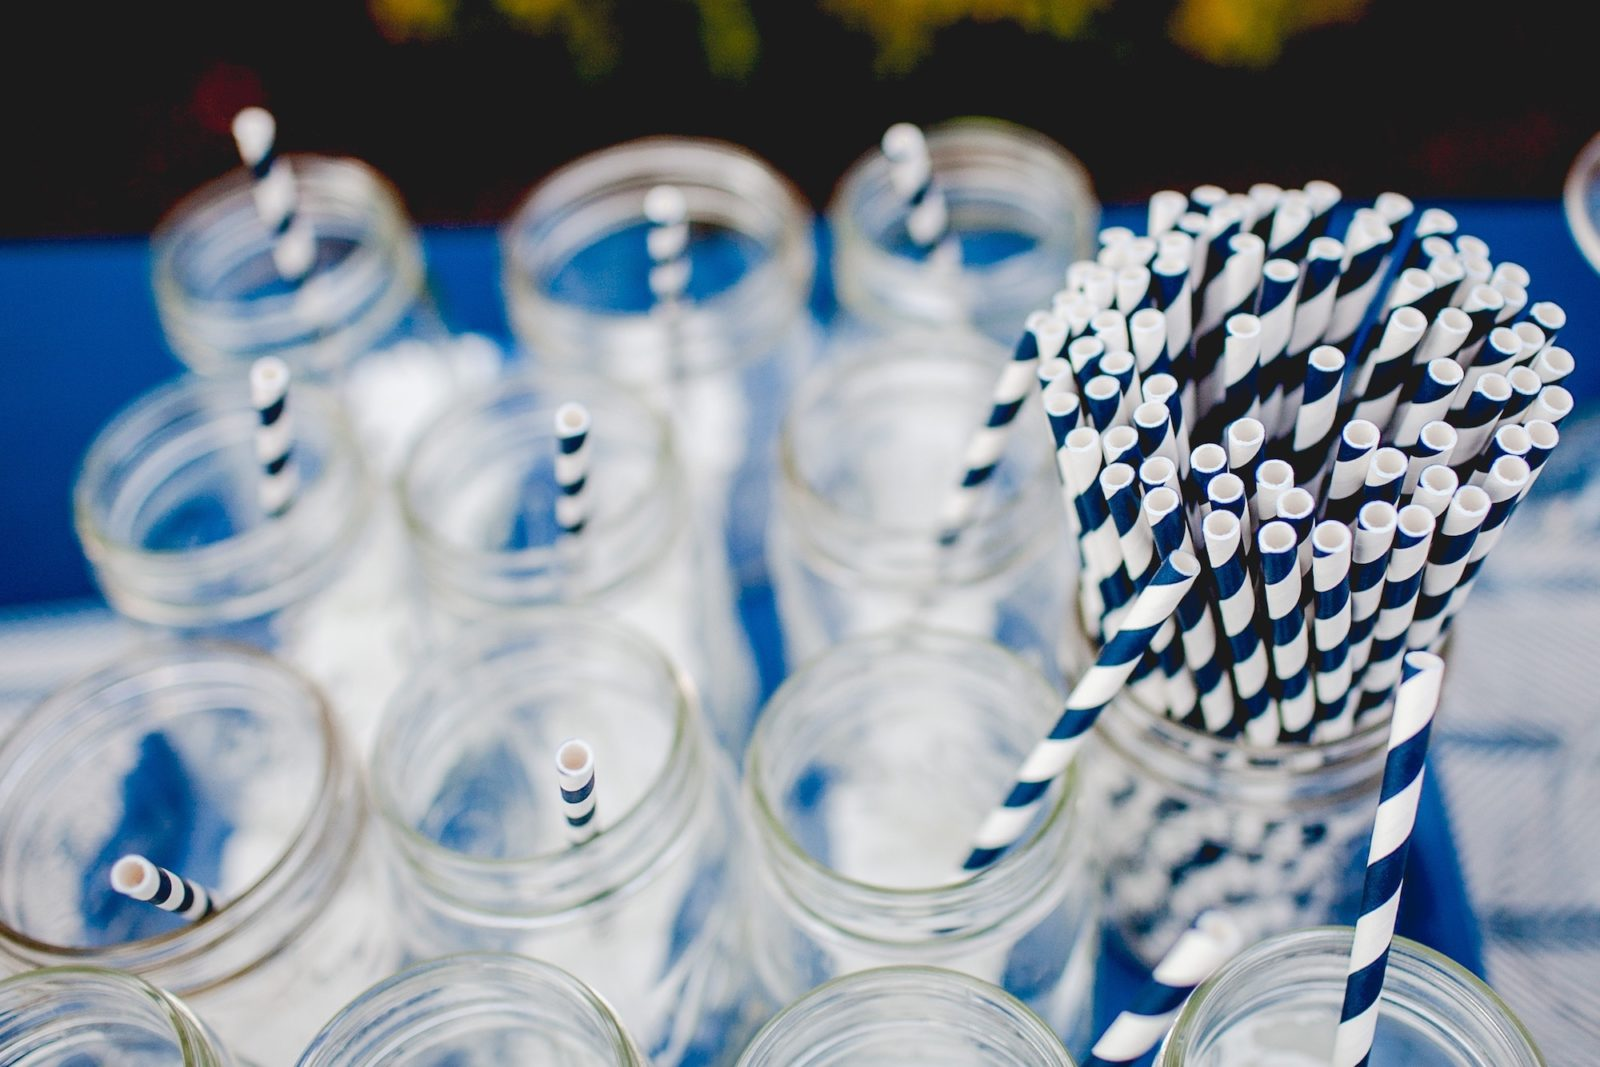 HiP Paris Blog: France's plastic ban on cups, straws and all single use plastic means you should be getting a paper straw like these stripy blue and white ones or no straw at all in your cocktails in Paris and across the country from now on.